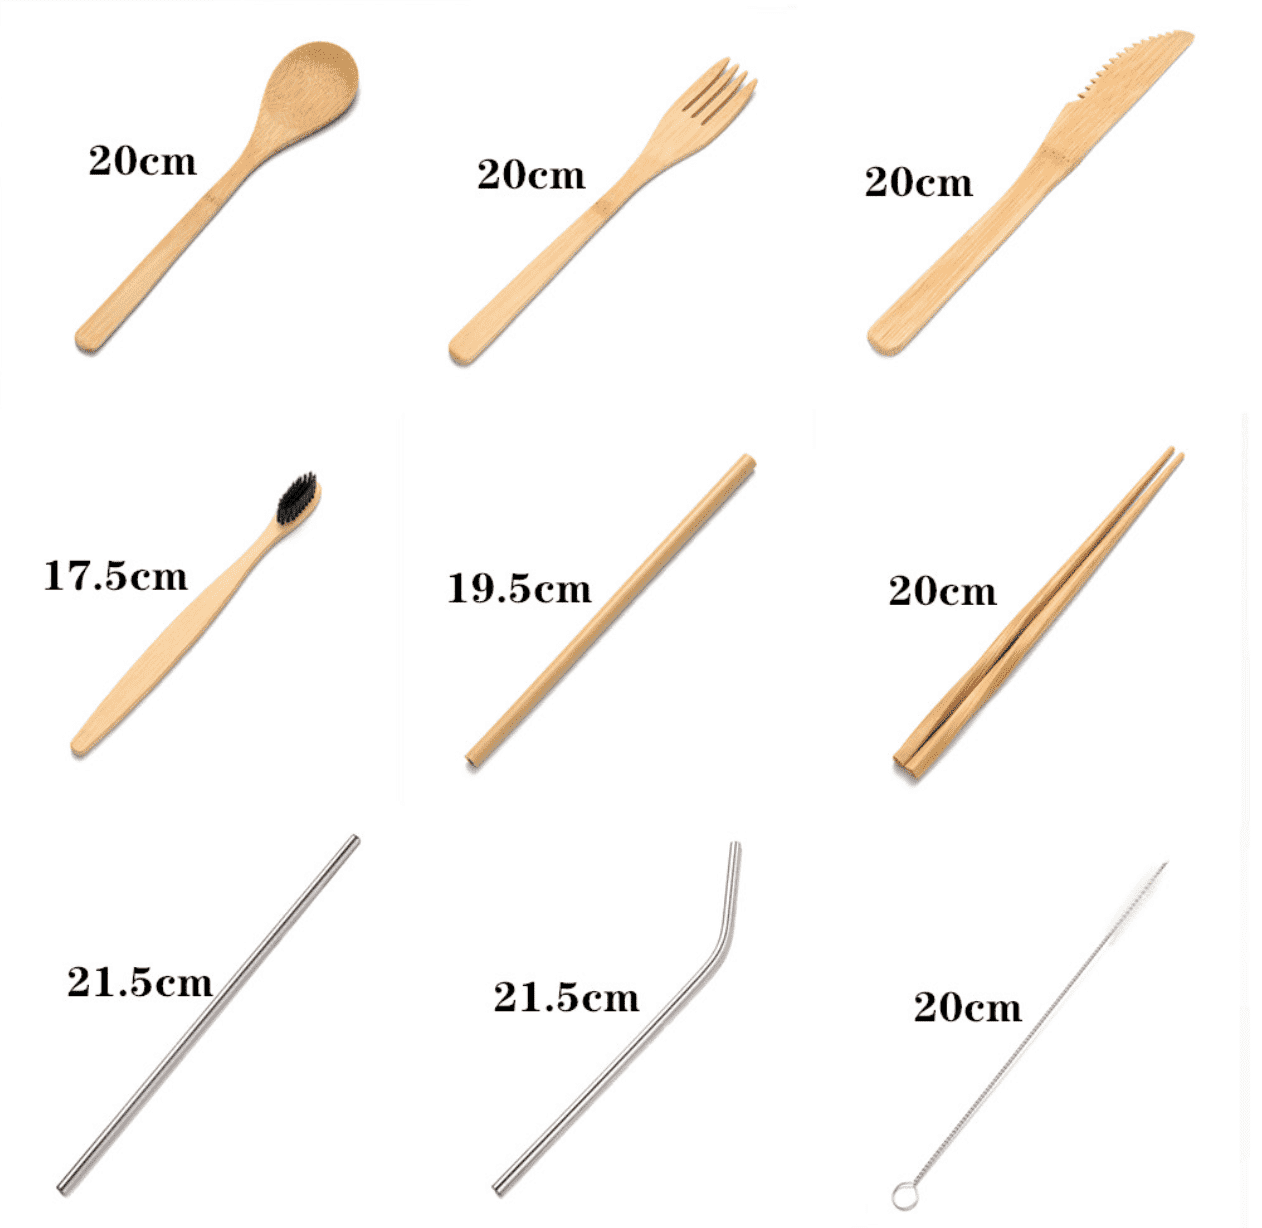 SALE! BAMBOO 10 PCS SET